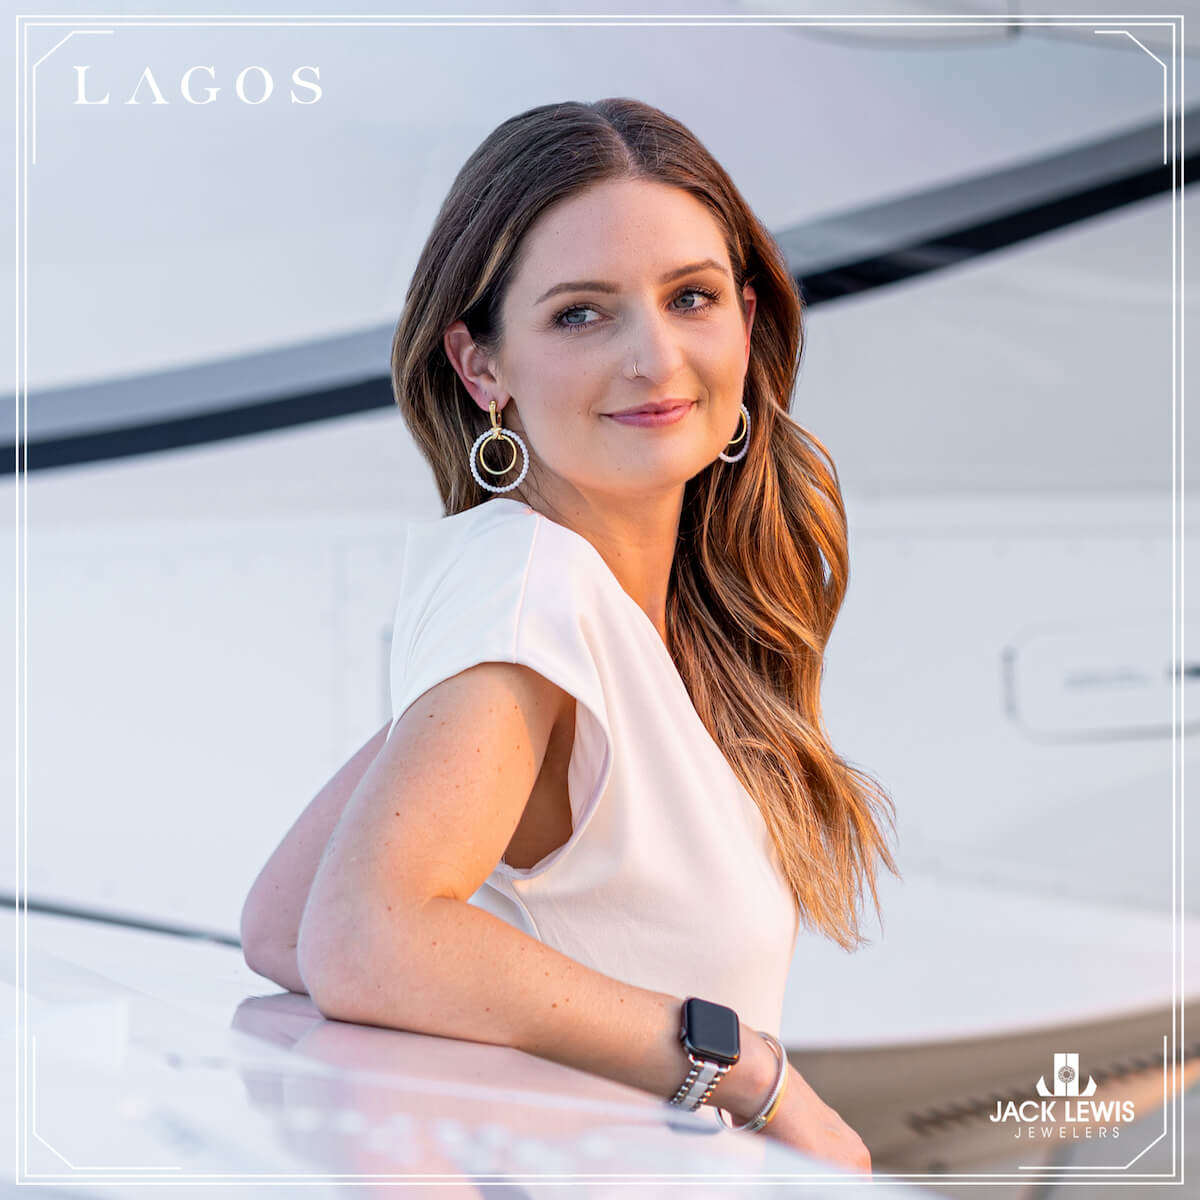 Young woman with long brown hair wearing a white pantsuit, and leaning against an airplane wing looking over her shoulder into the camera. She is wearing a bracelet, earrings and rings from the brand Lagos and their caviar collection.